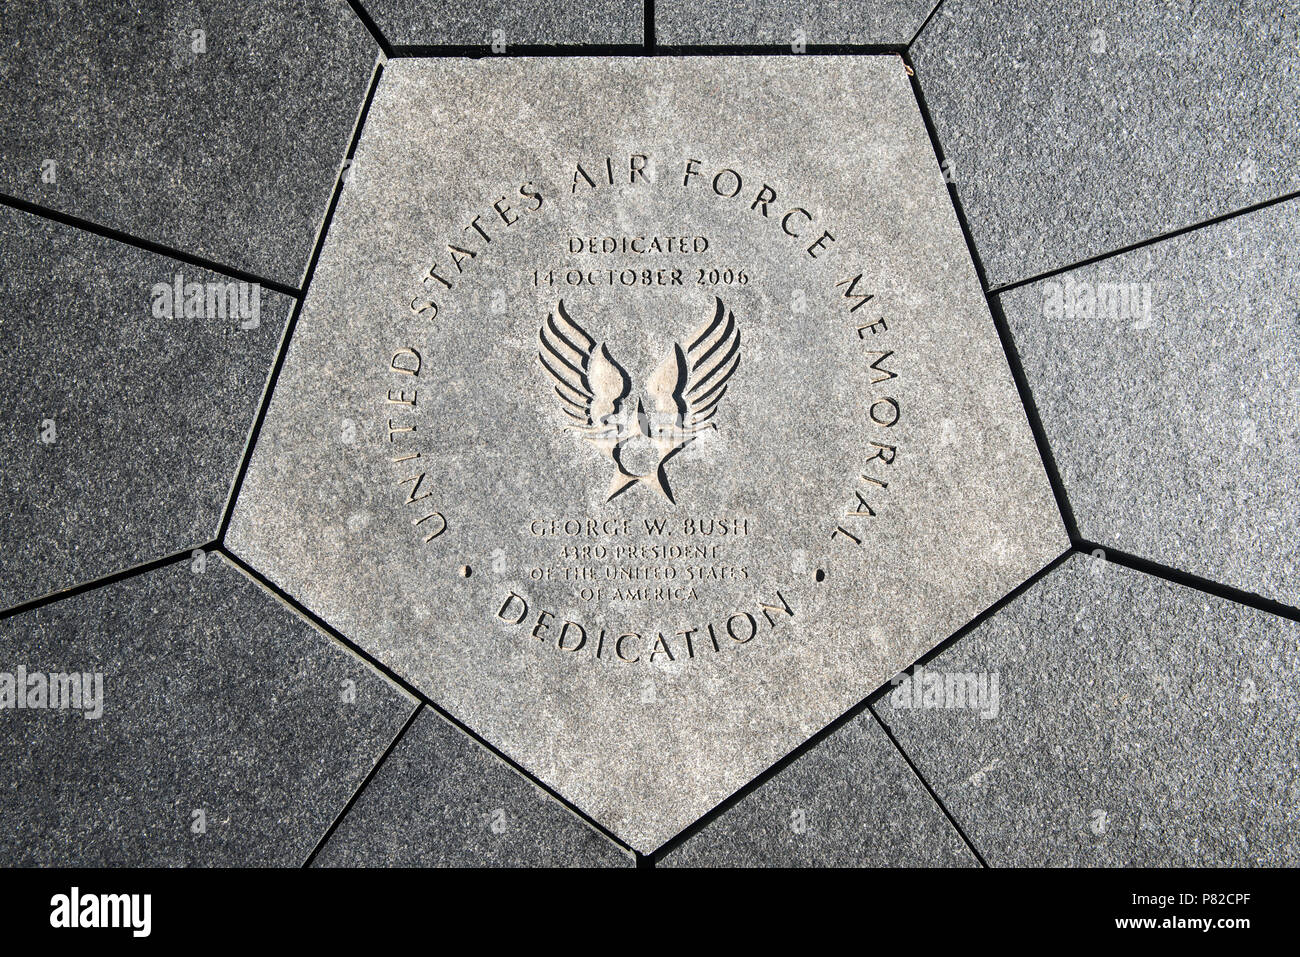 ARLINGTON, Virginia, USA - A foundation stone in the center of the US Air Force Memorial in Washington DC. It references the memorial's dedication by President George W. Bush on 14 October 2006. - Stock Image